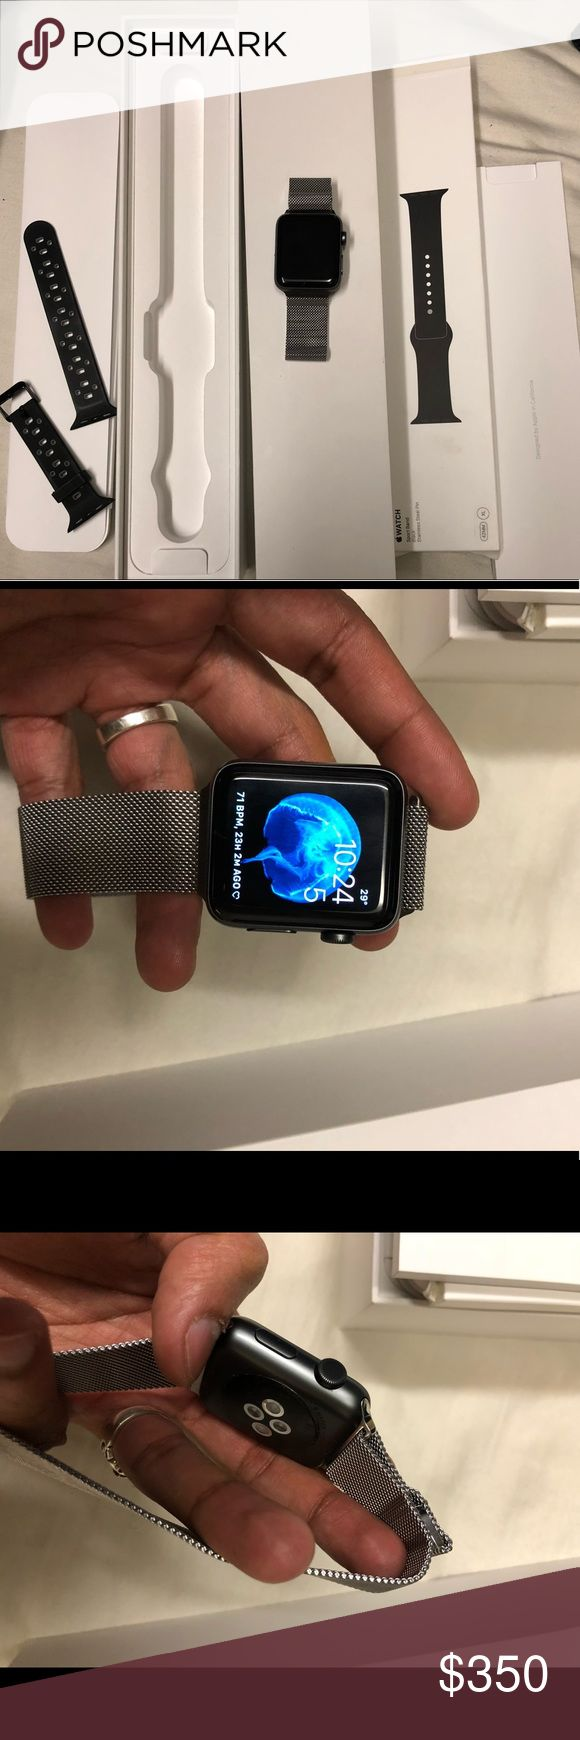 Apple Watch Series 2 42mm Apple Watch series 2 42mm Aluminum (looks dark gray). Price includes 3 bands. Still under warranty until June 18th, 2018. No issues, defects or scratches. Watch is 100% authentic and black band is authentic Apple.  Willing to sell bands separately just comment below. Any questions please ask.  Open to offers Apple Accessories Watches